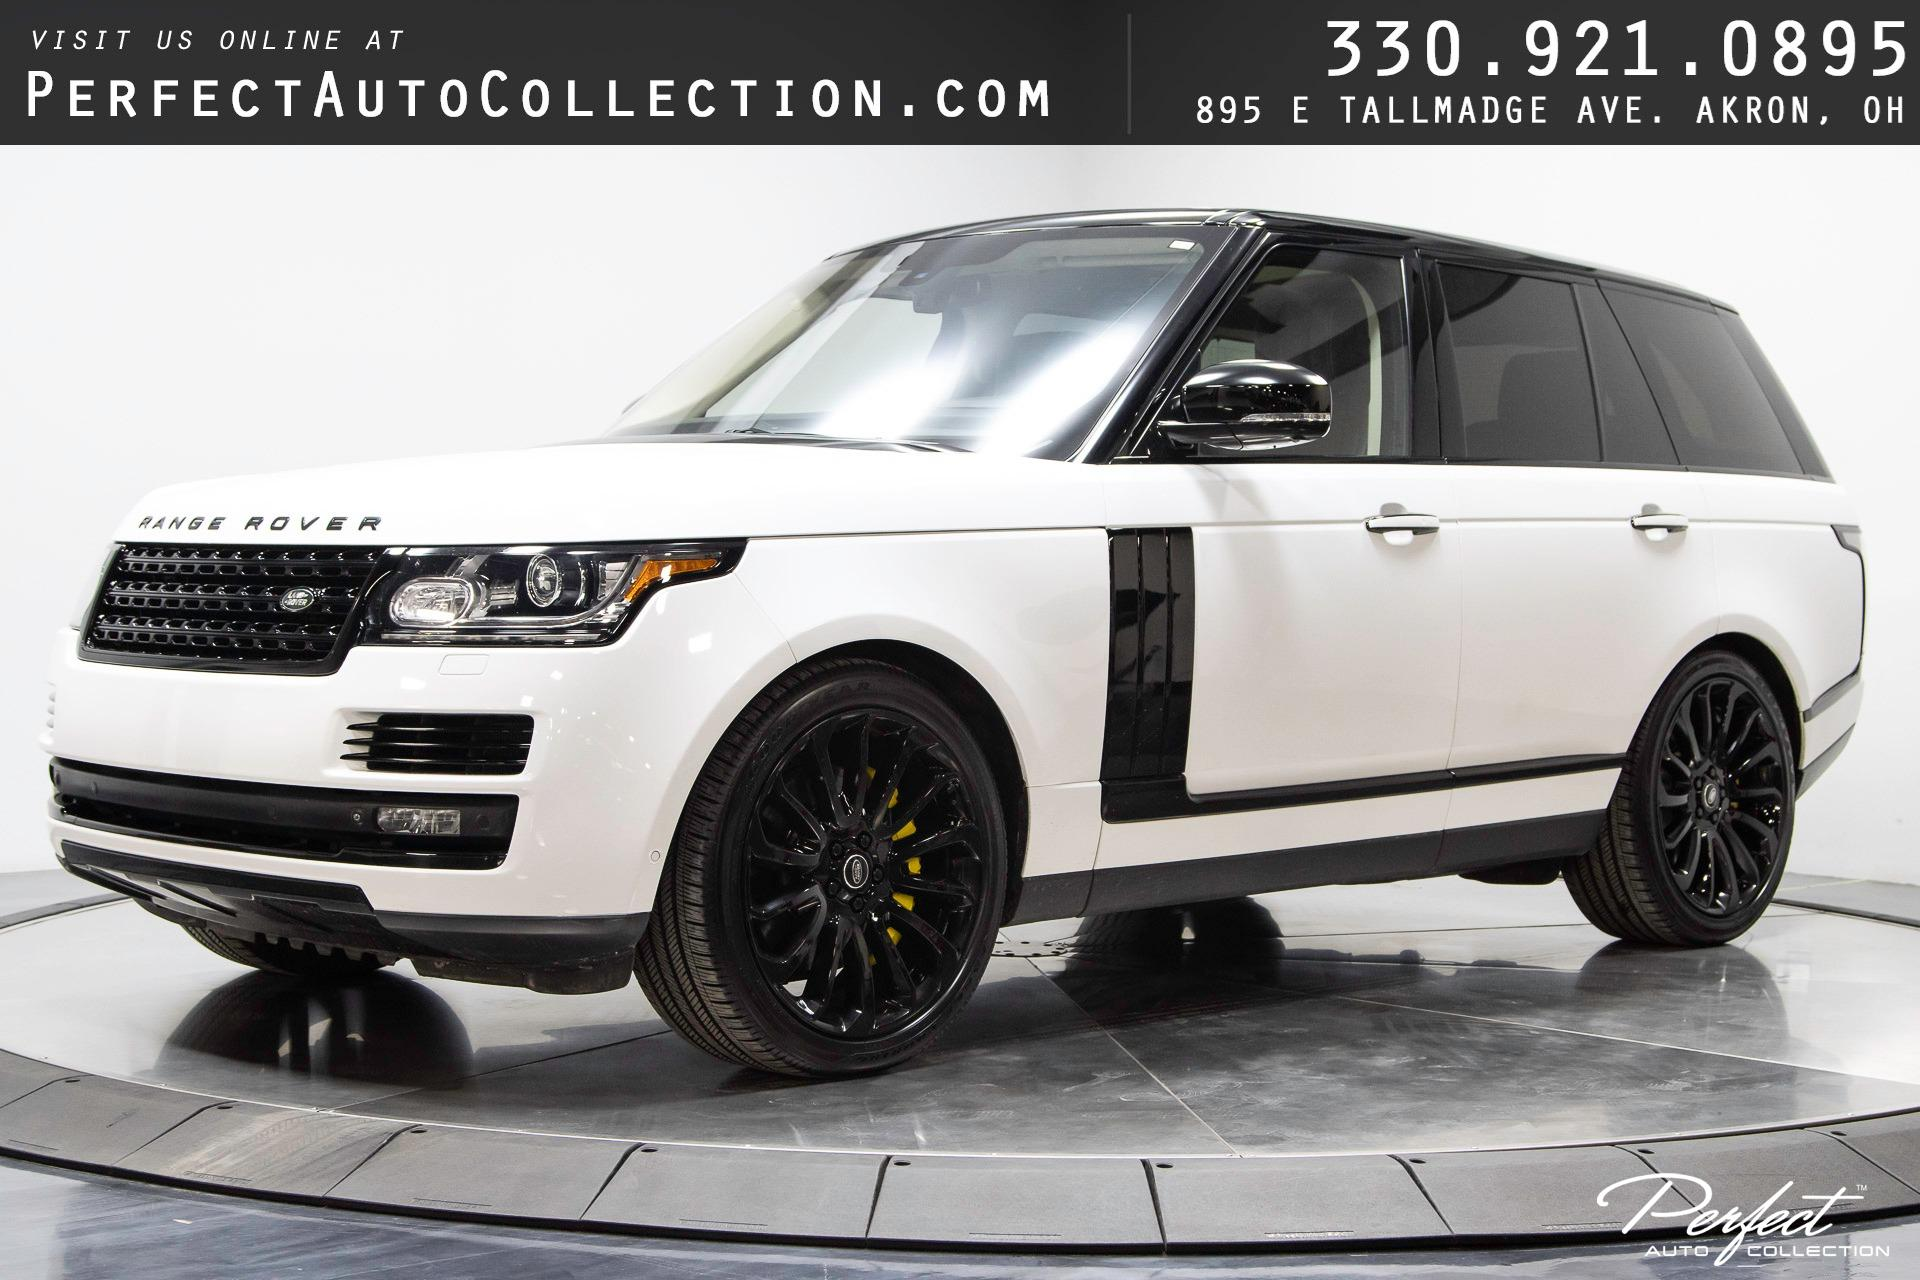 Used 2014 Land Rover Range Rover Autobiography for sale $59,995 at Perfect Auto Collection in Akron OH 44310 1